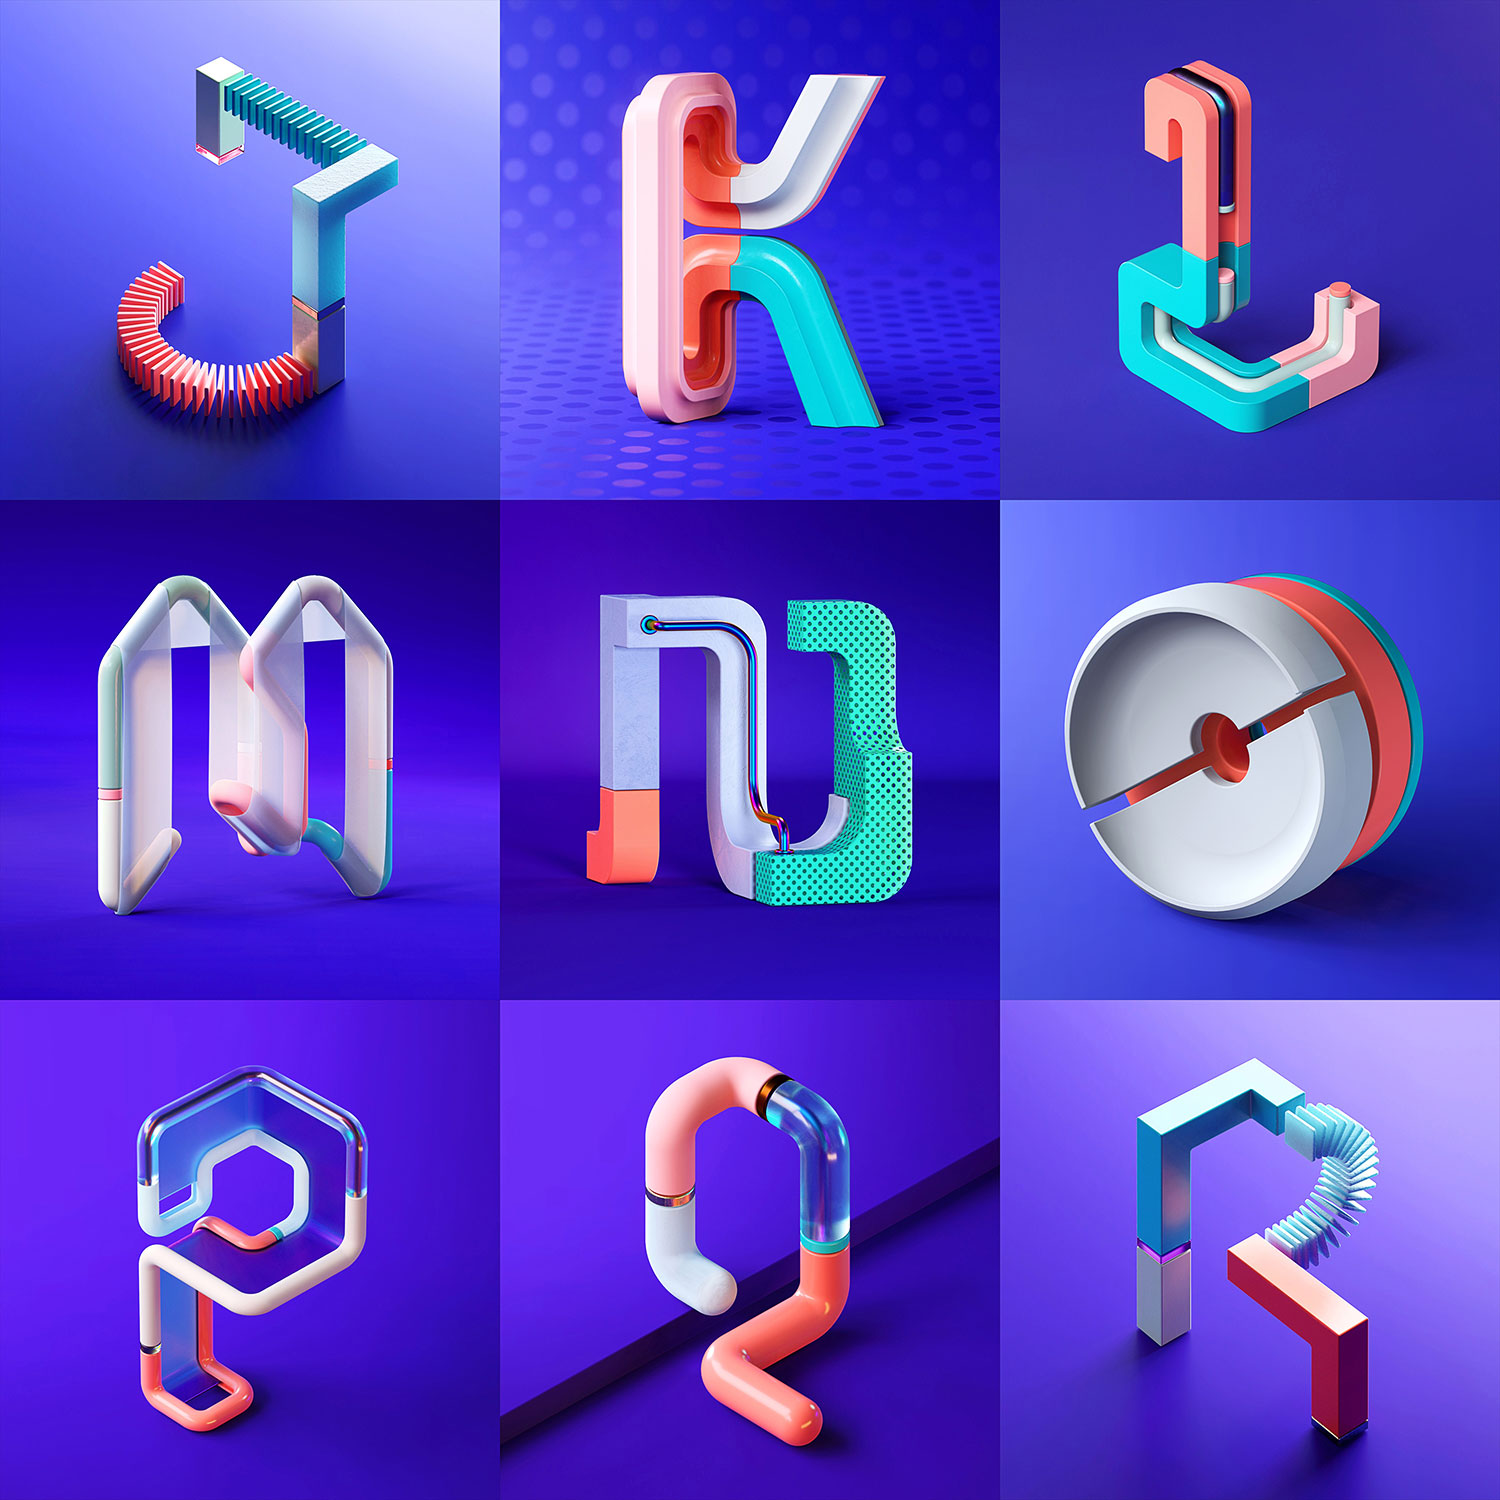 36 Days of Type 2018 - 3D letter J to R visuals by Singapore based brand strategy and creative design consultancy, BÜRO UFHO.